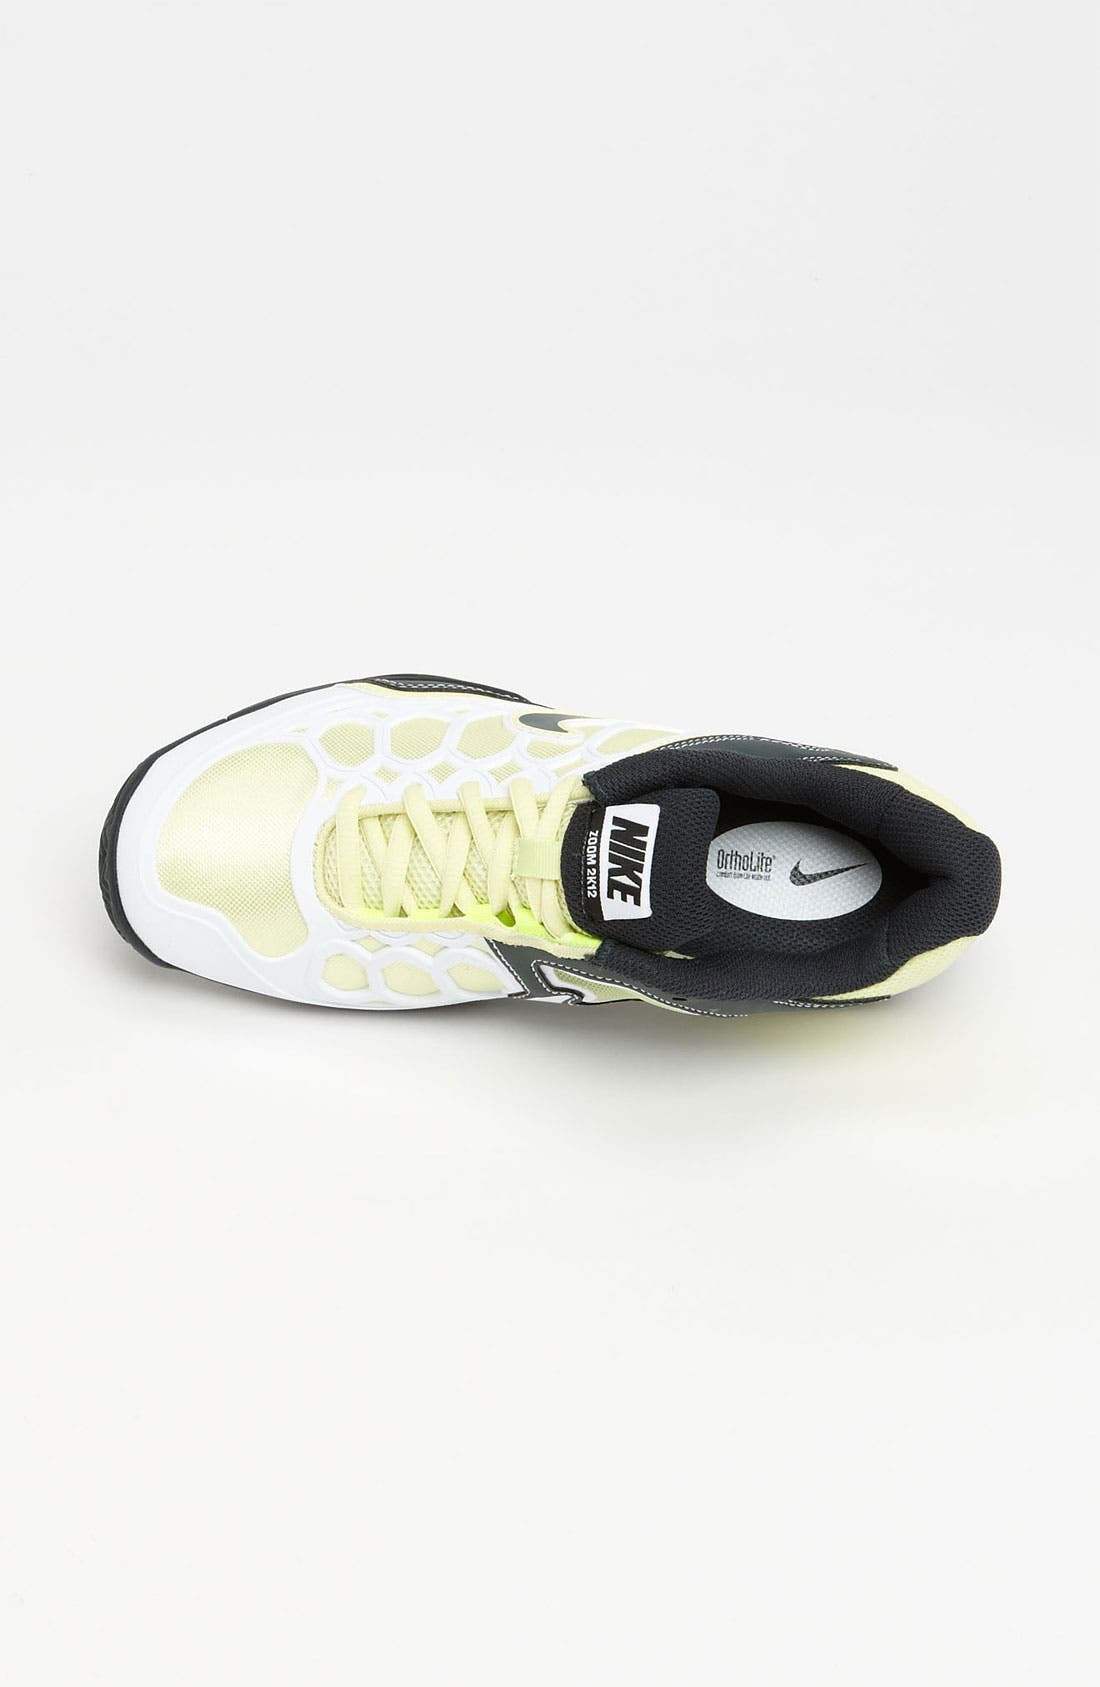 Alternate Image 3  - Nike 'Zoom Breathe 2K12' Tennis Shoe (Women)